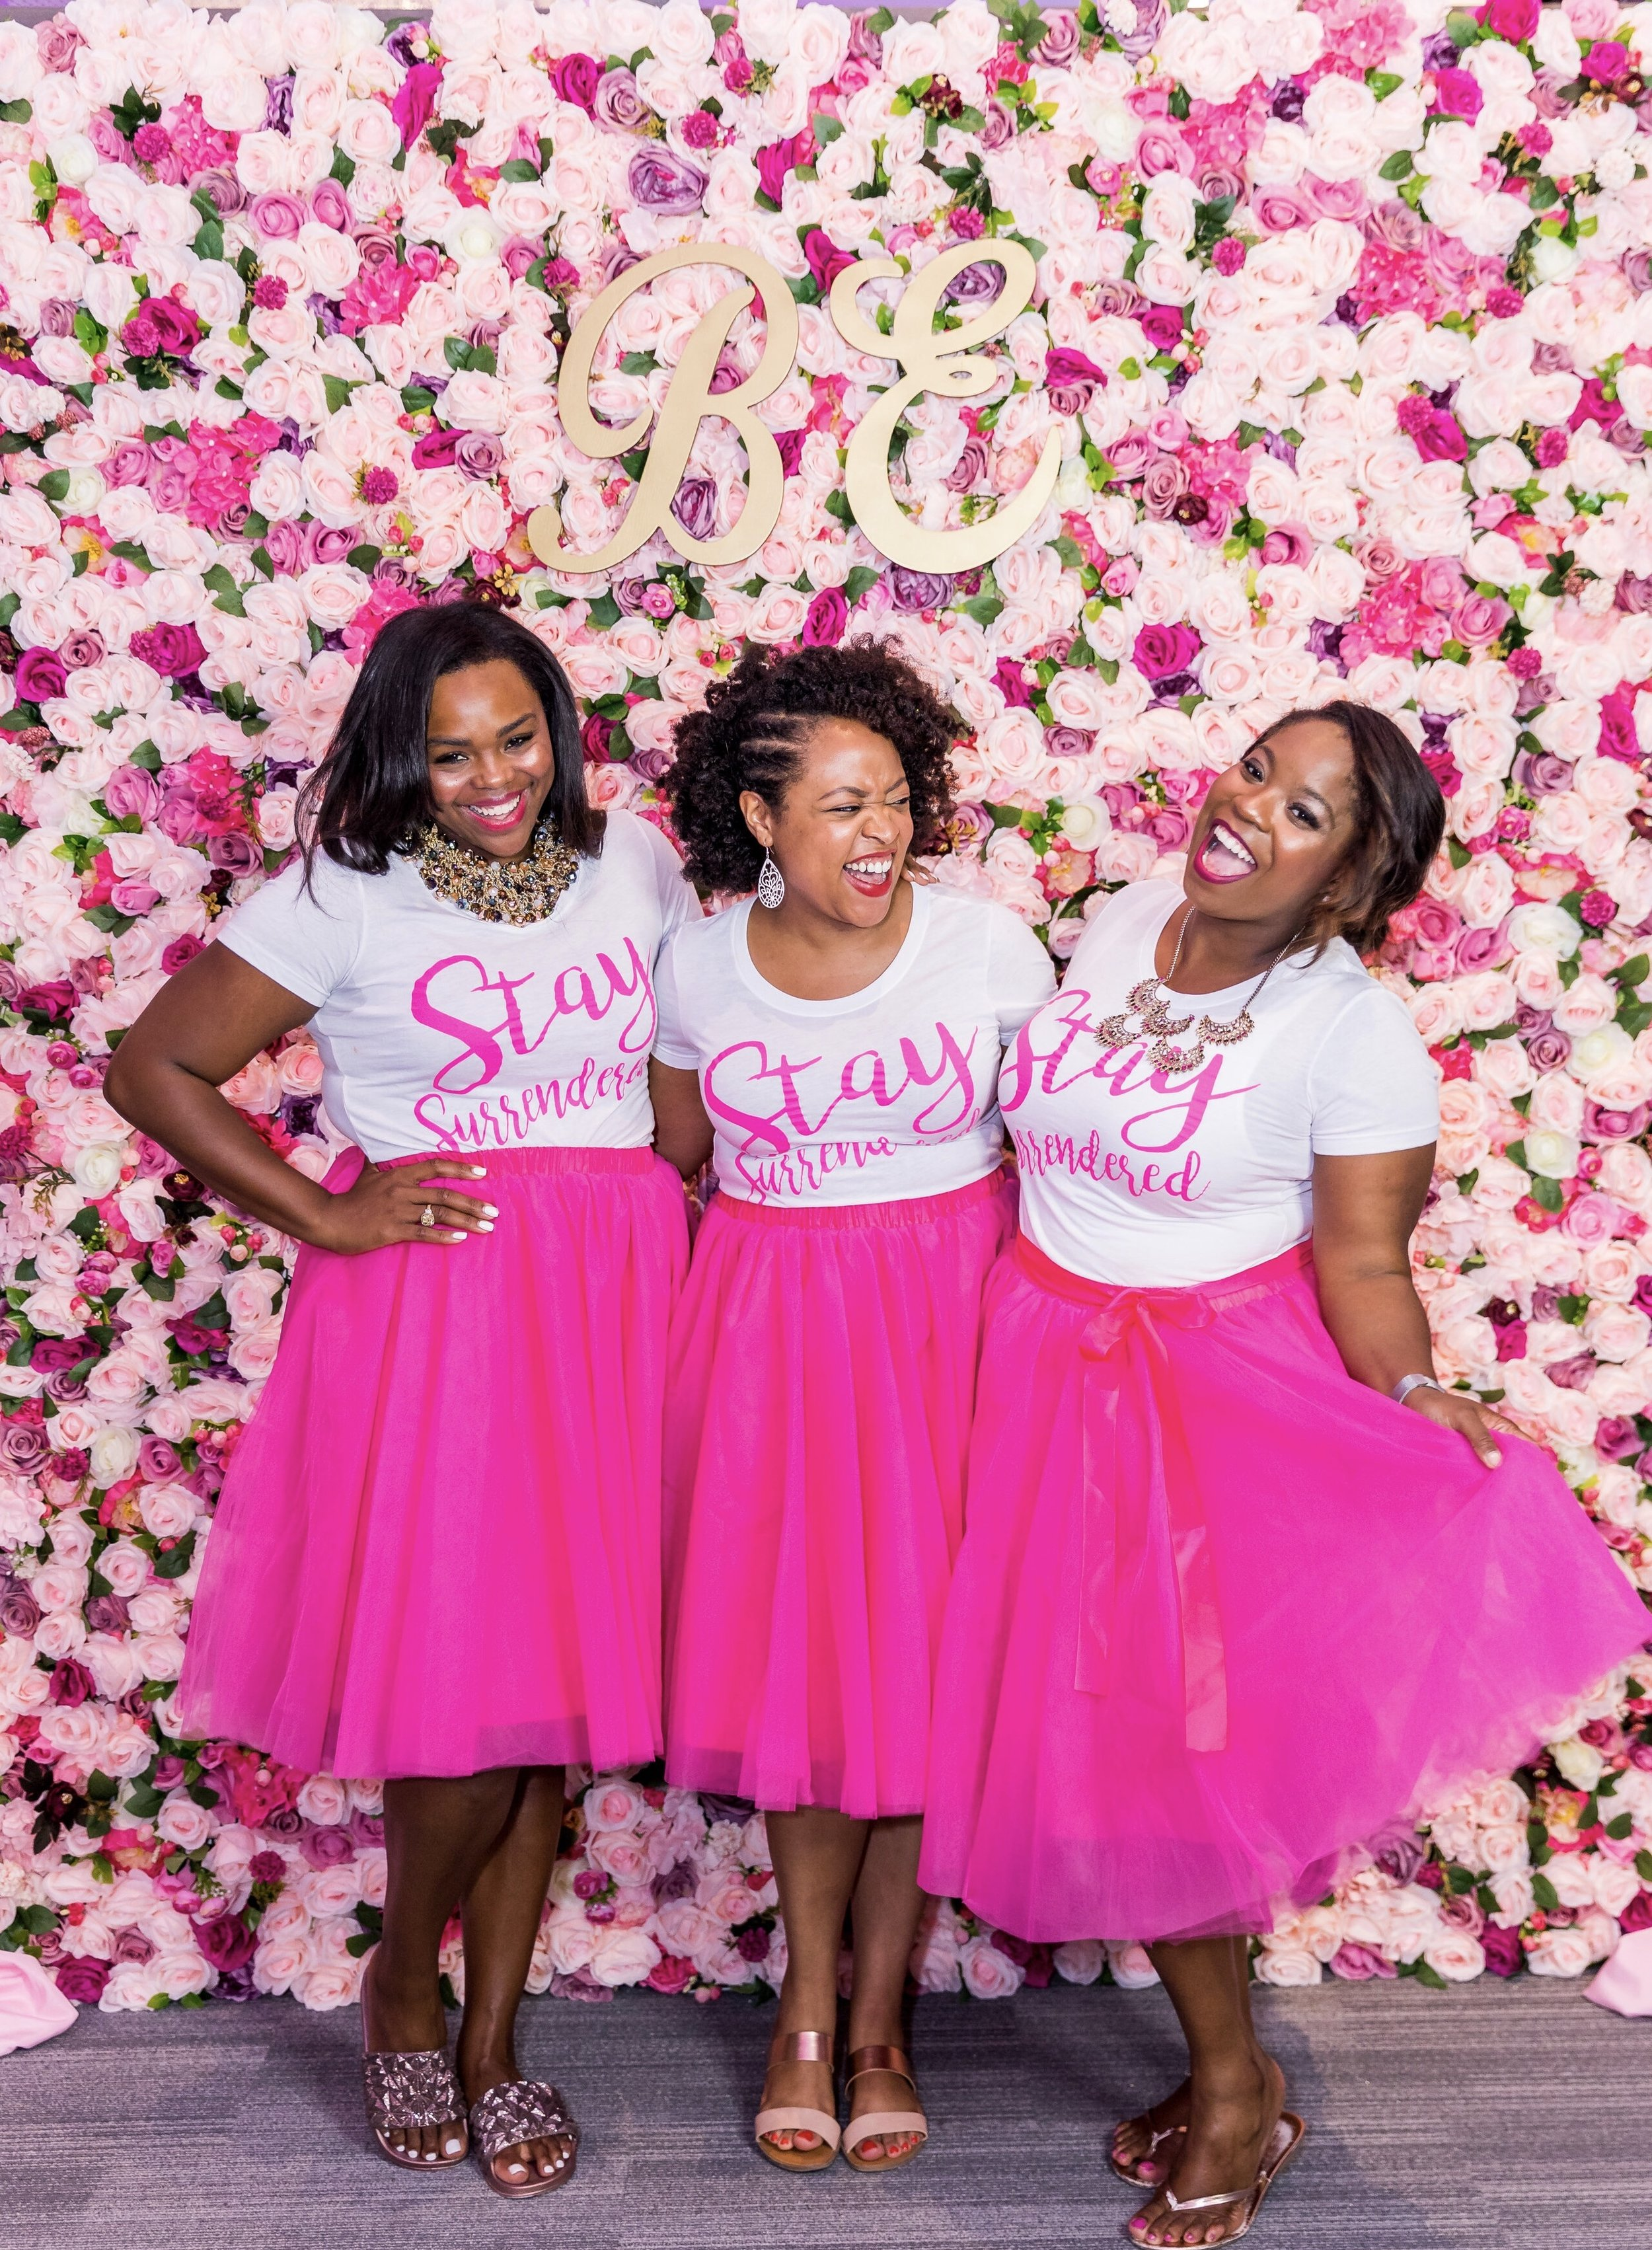 THE BE EVENT - Make plans to join us for this year's event taking place on Friday, June 5th and Saturday, June 6th 2020 at Macedonia Church of Pittsburgh.The BE Event is a space where the modern woman of faith can gather to BE:BE EmpoweredBE ChicBE SisterlyBE FunBE InspiredBE HealthyBE You…The God Inspired You!